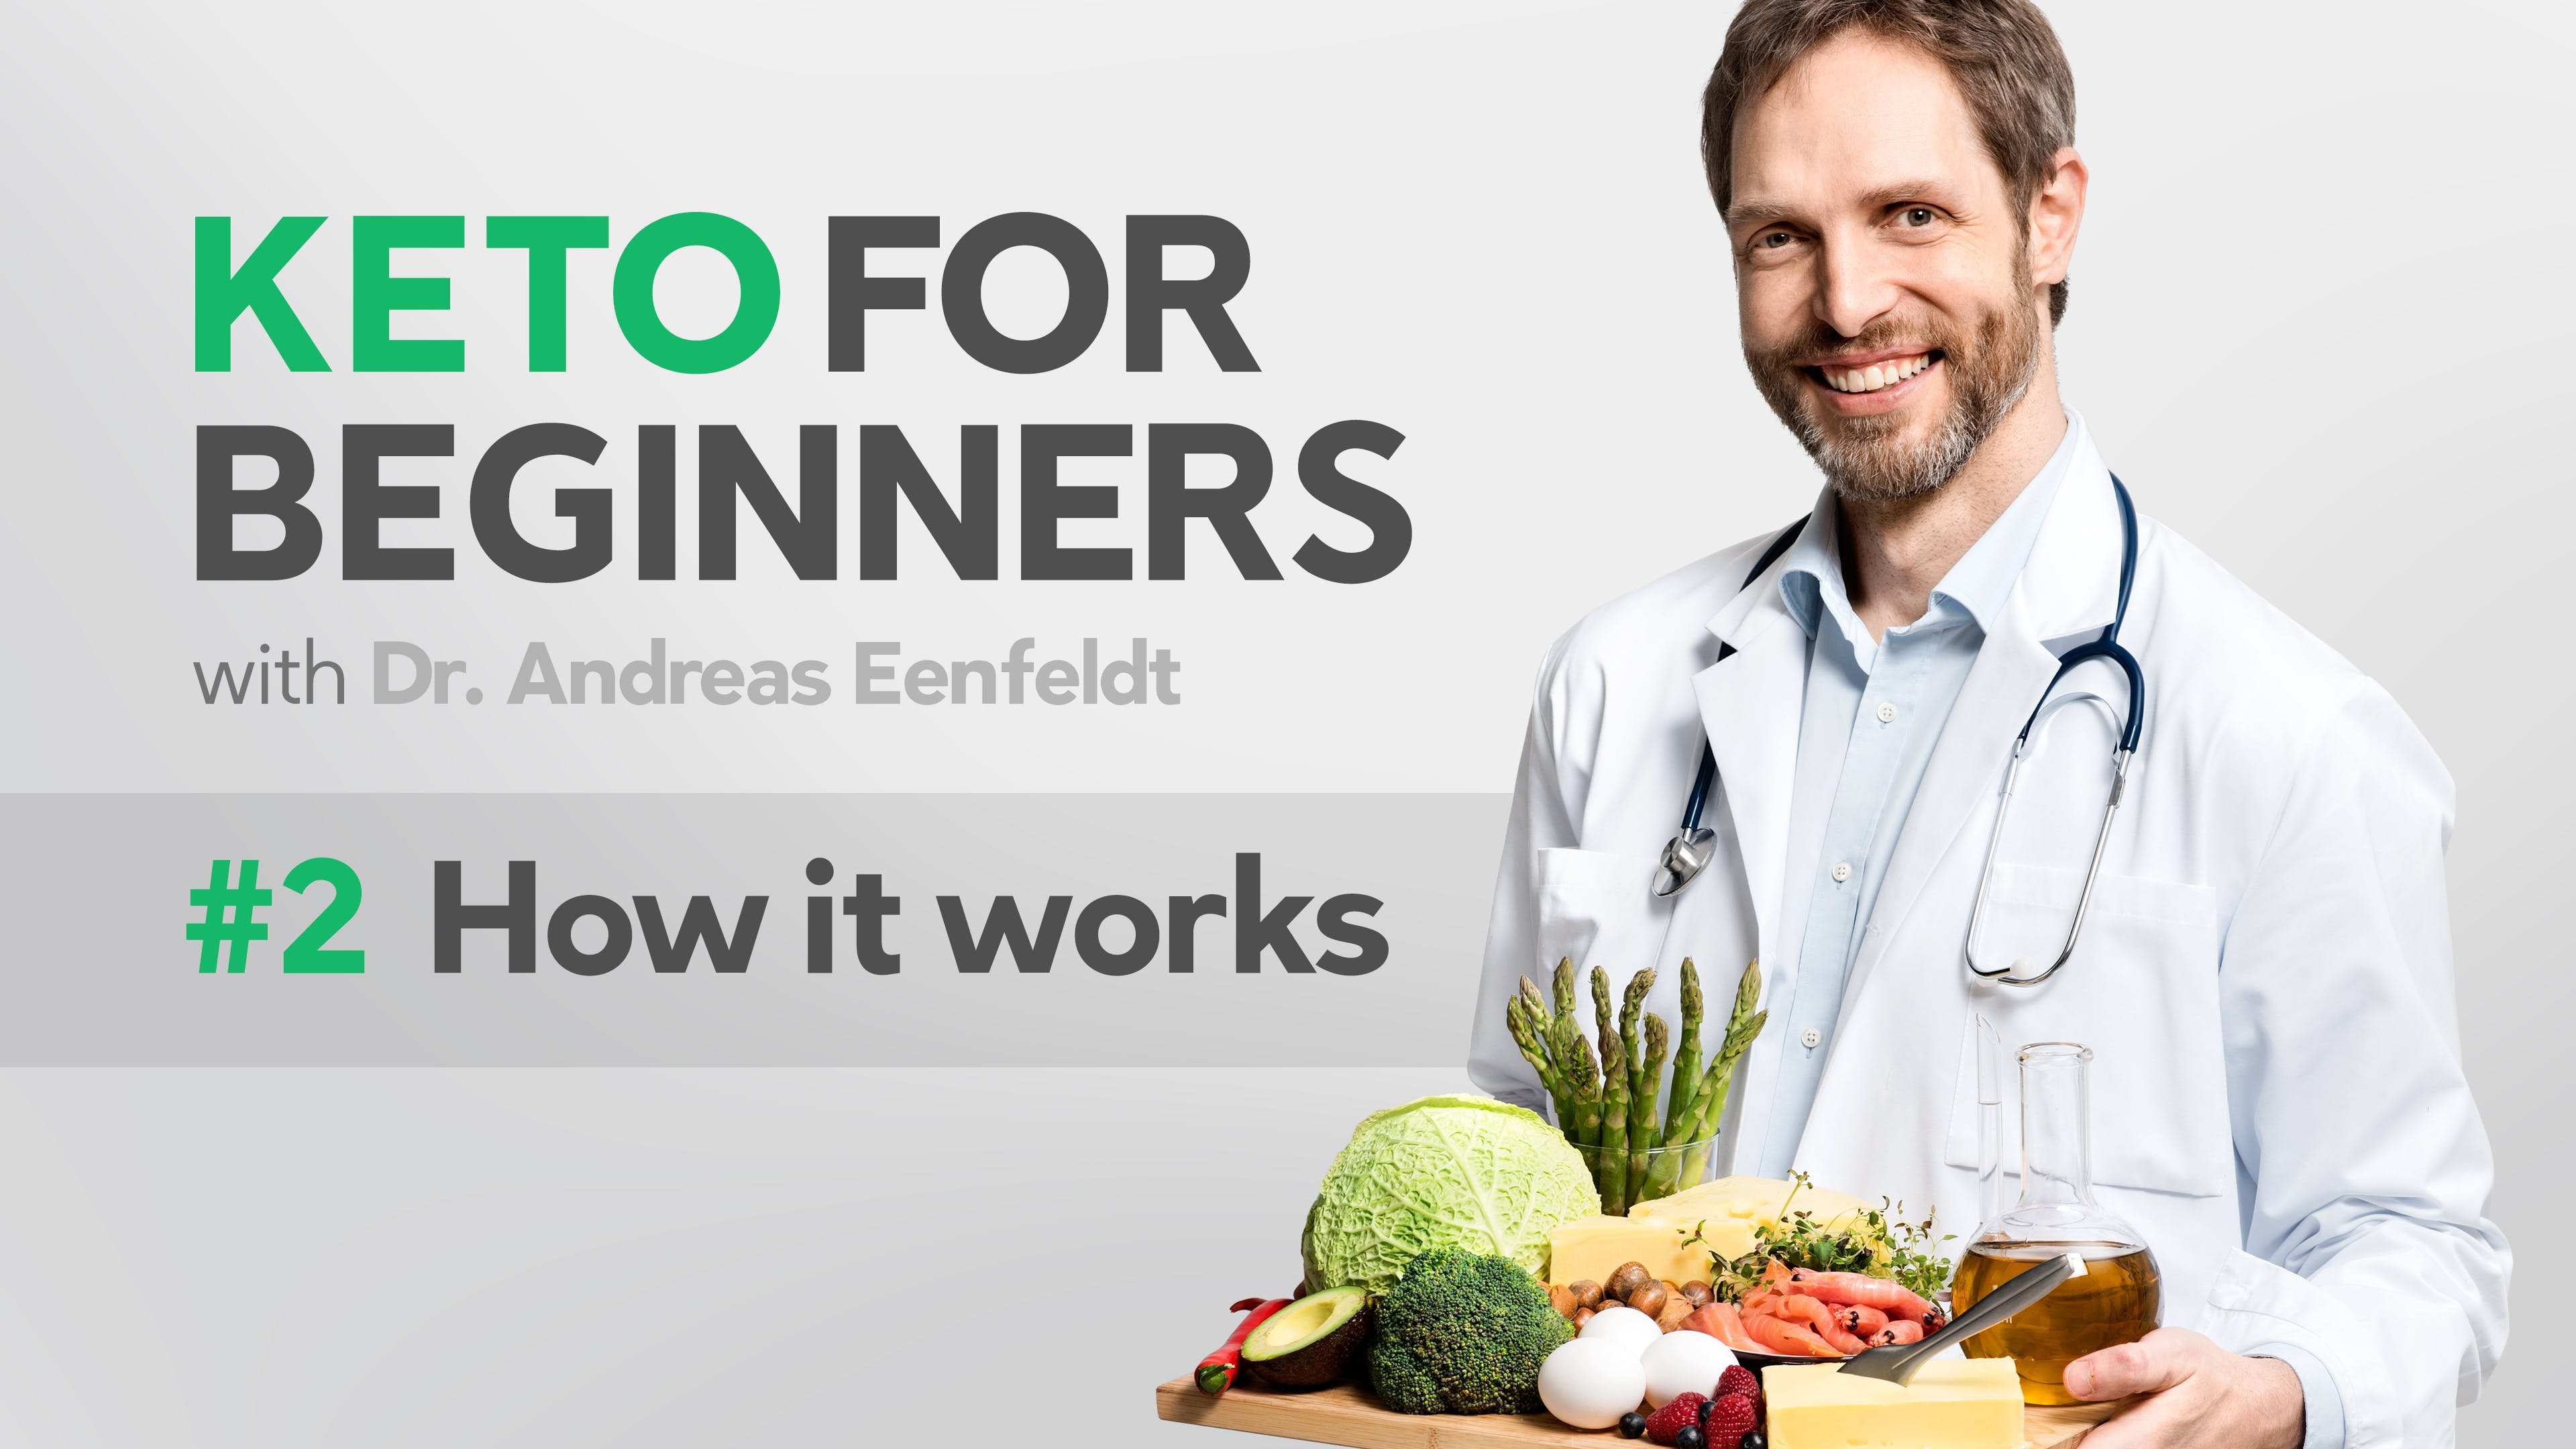 Keto for beginners: How it works